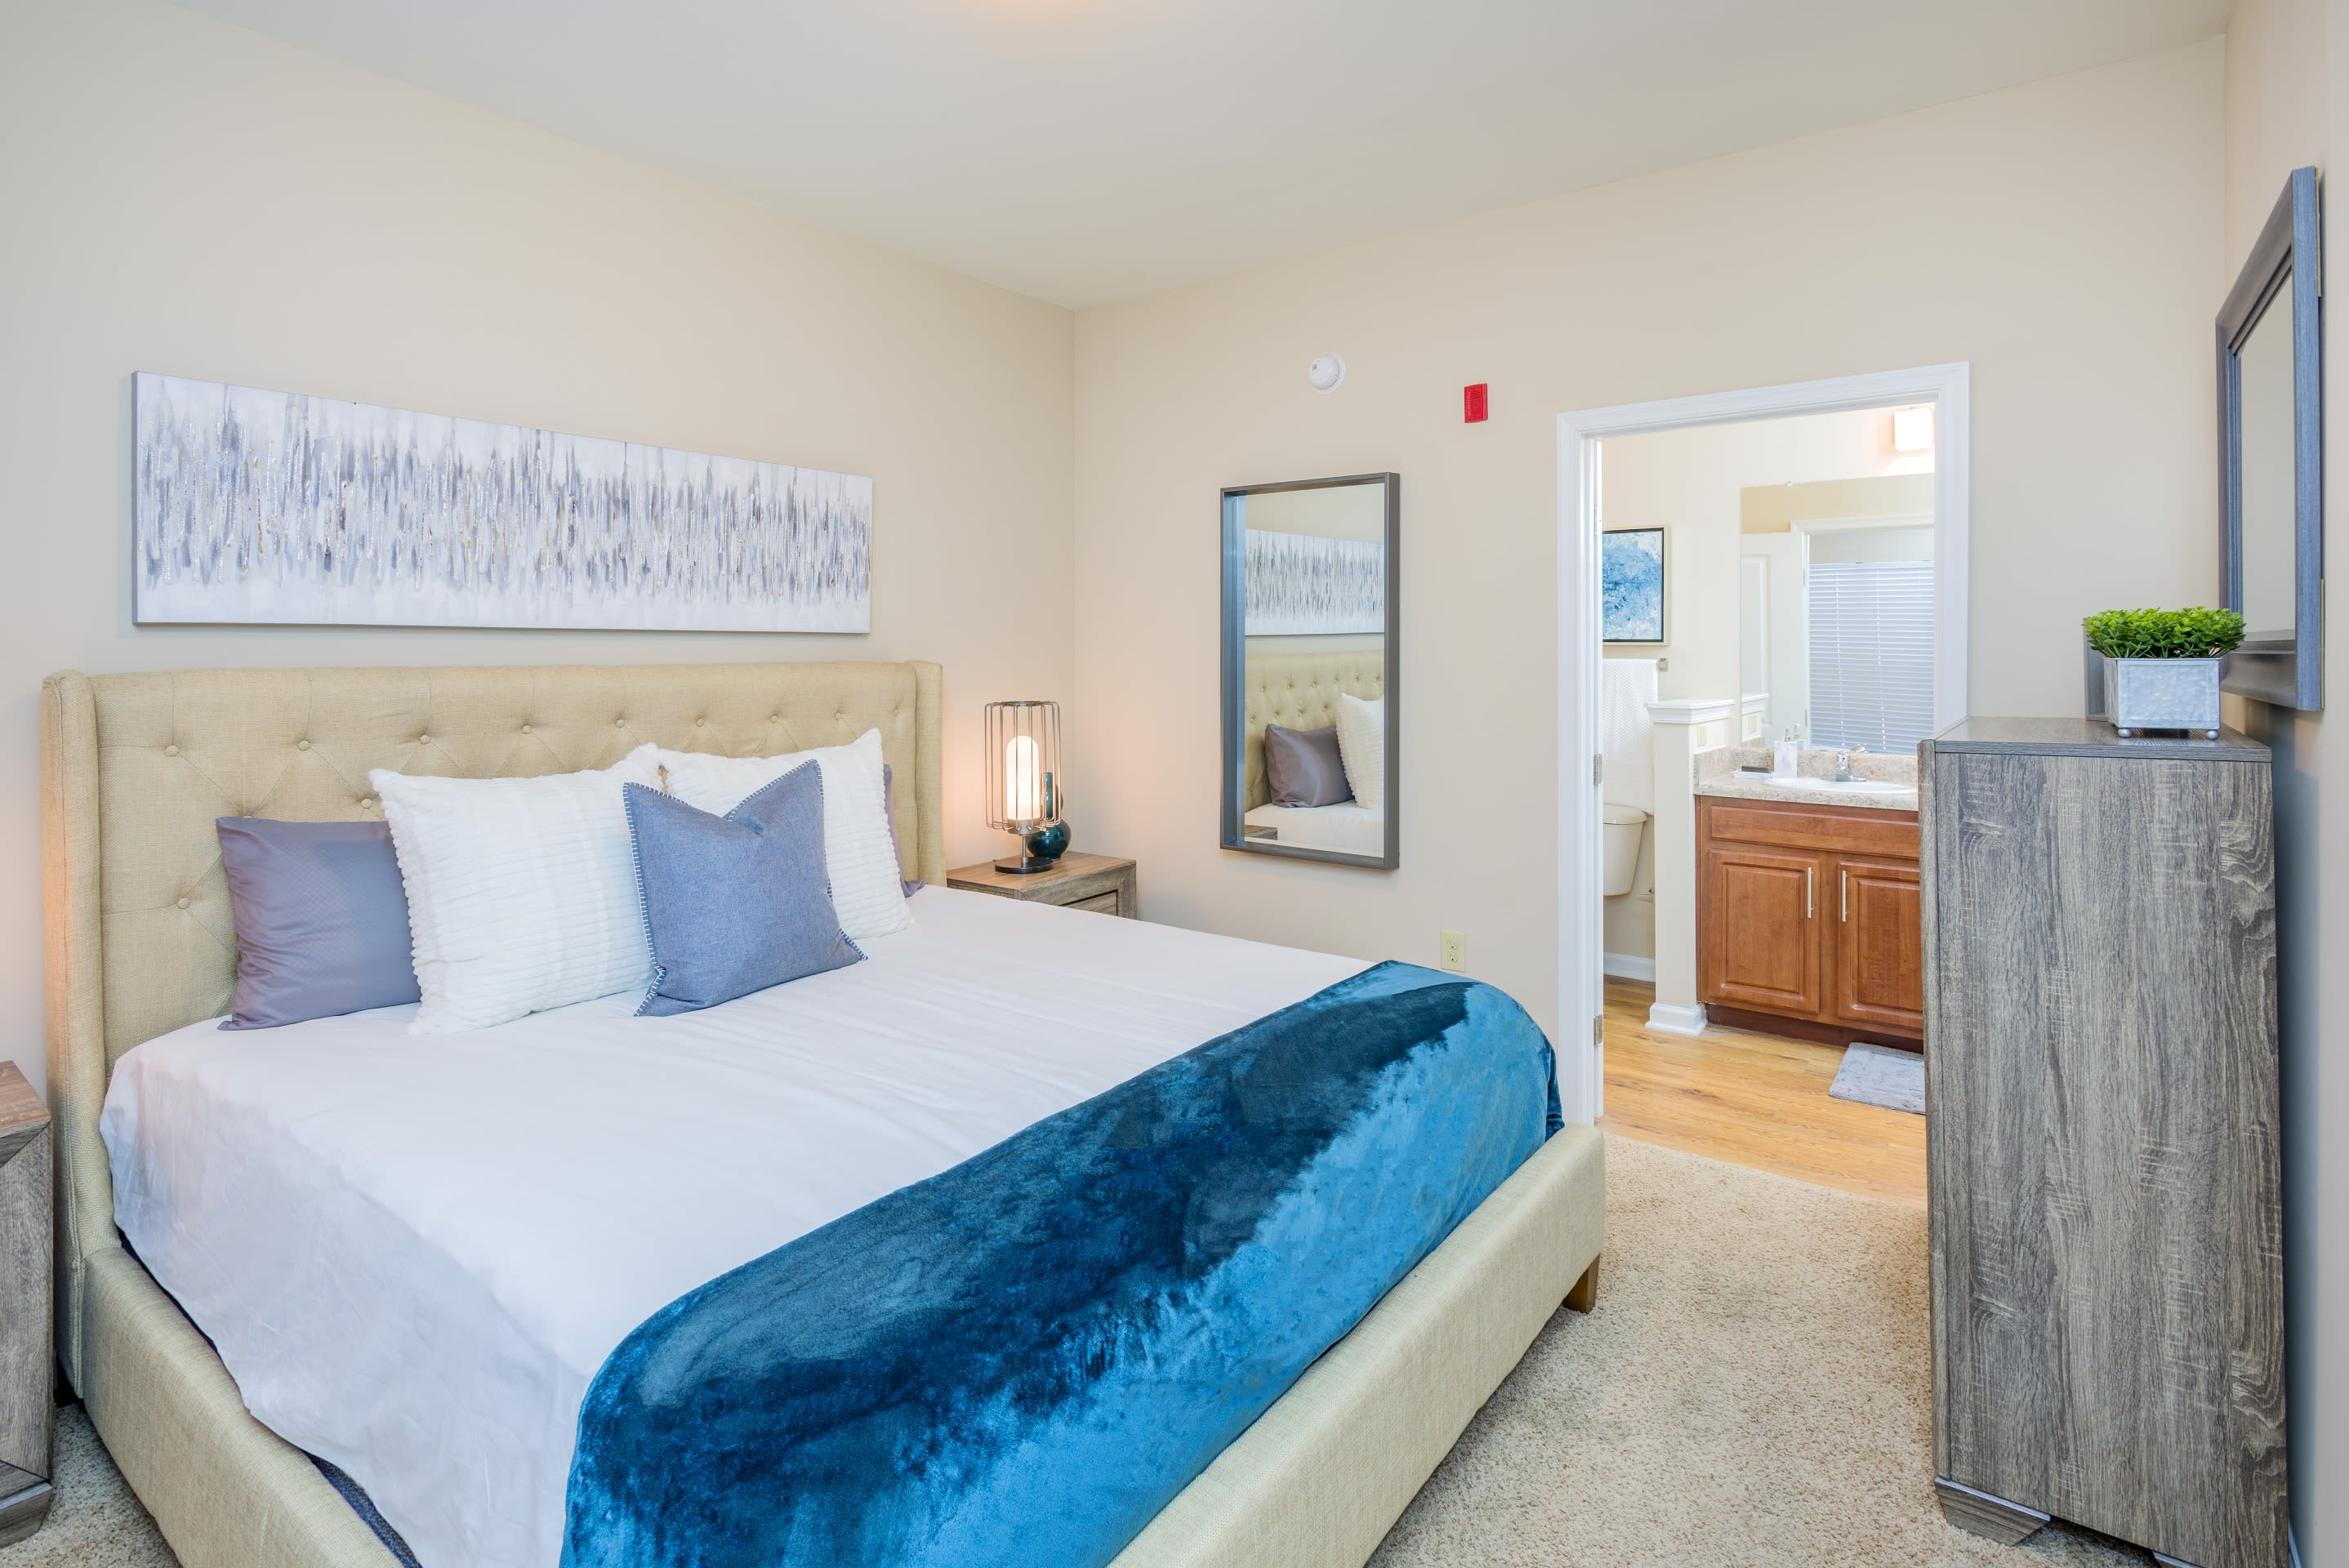 Spacious bedroom at Arbor Village in Summerville, South Carolina